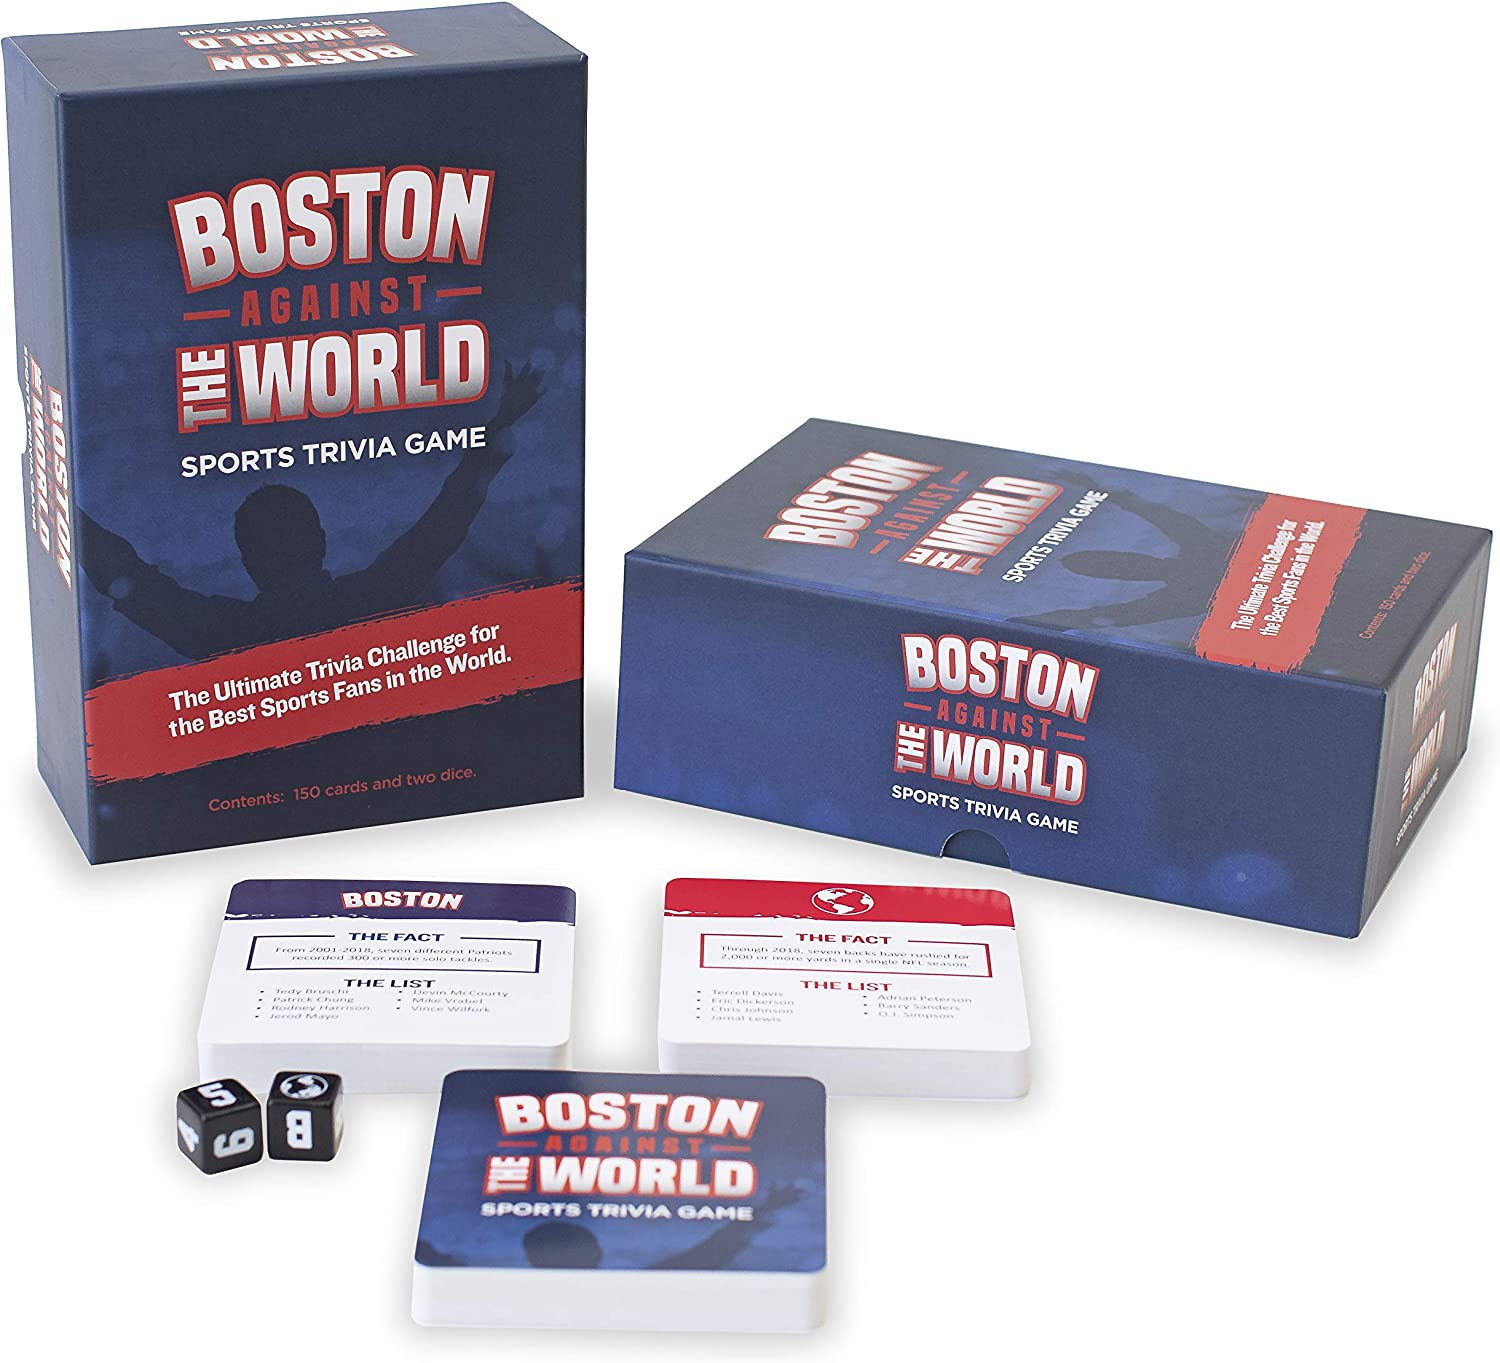 Boston In a popularity Against The World Game - Daily bargain sale Sports Trivia